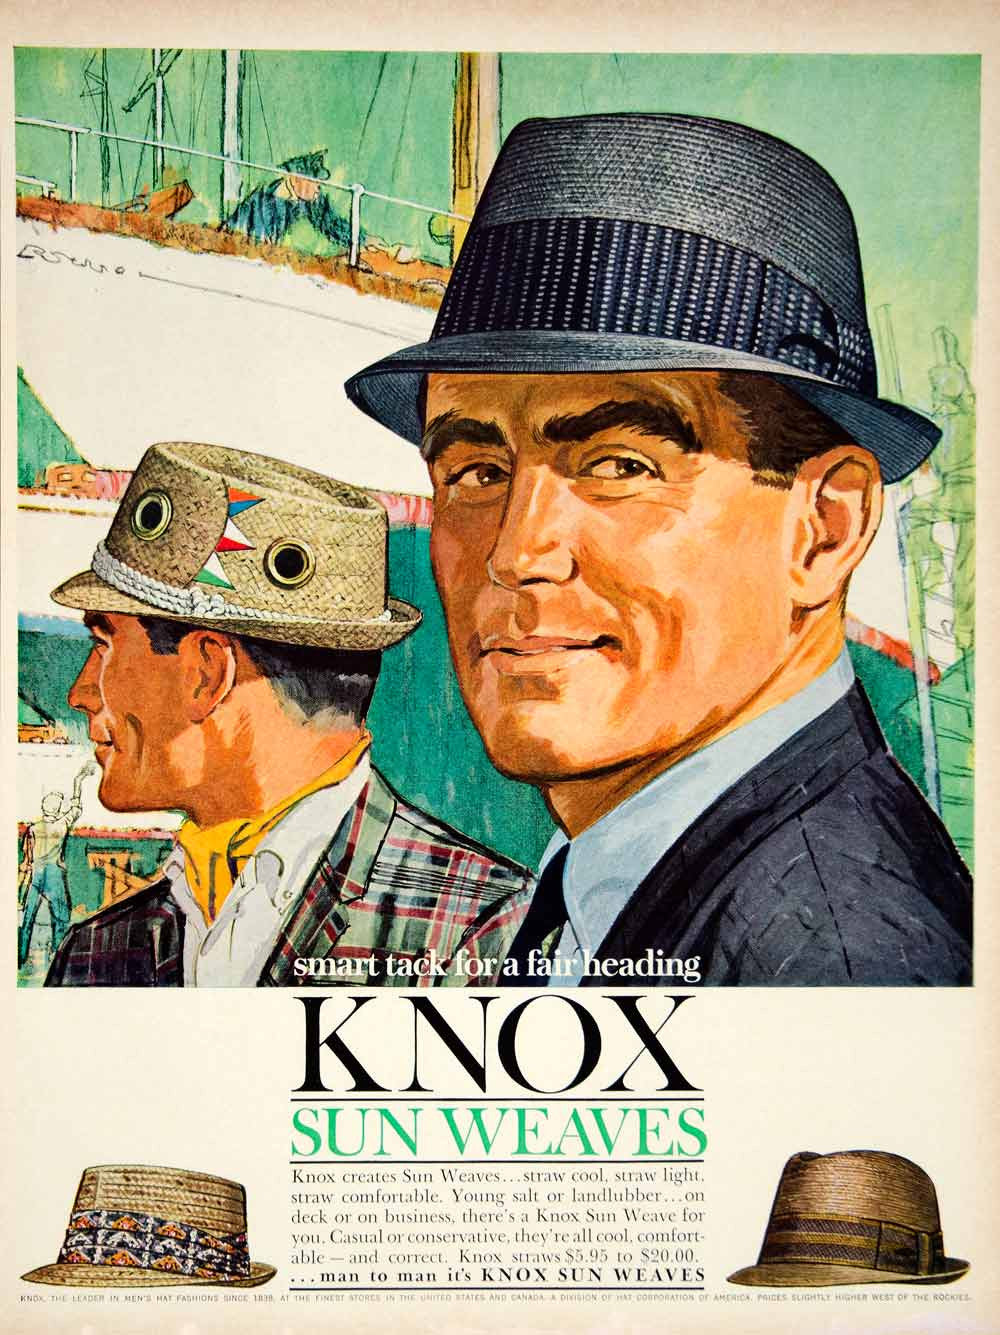 1962 Ad Vintage Knox Sun Weave Summer Hat Fashion Don Draper 60s YMM5 - Period Paper